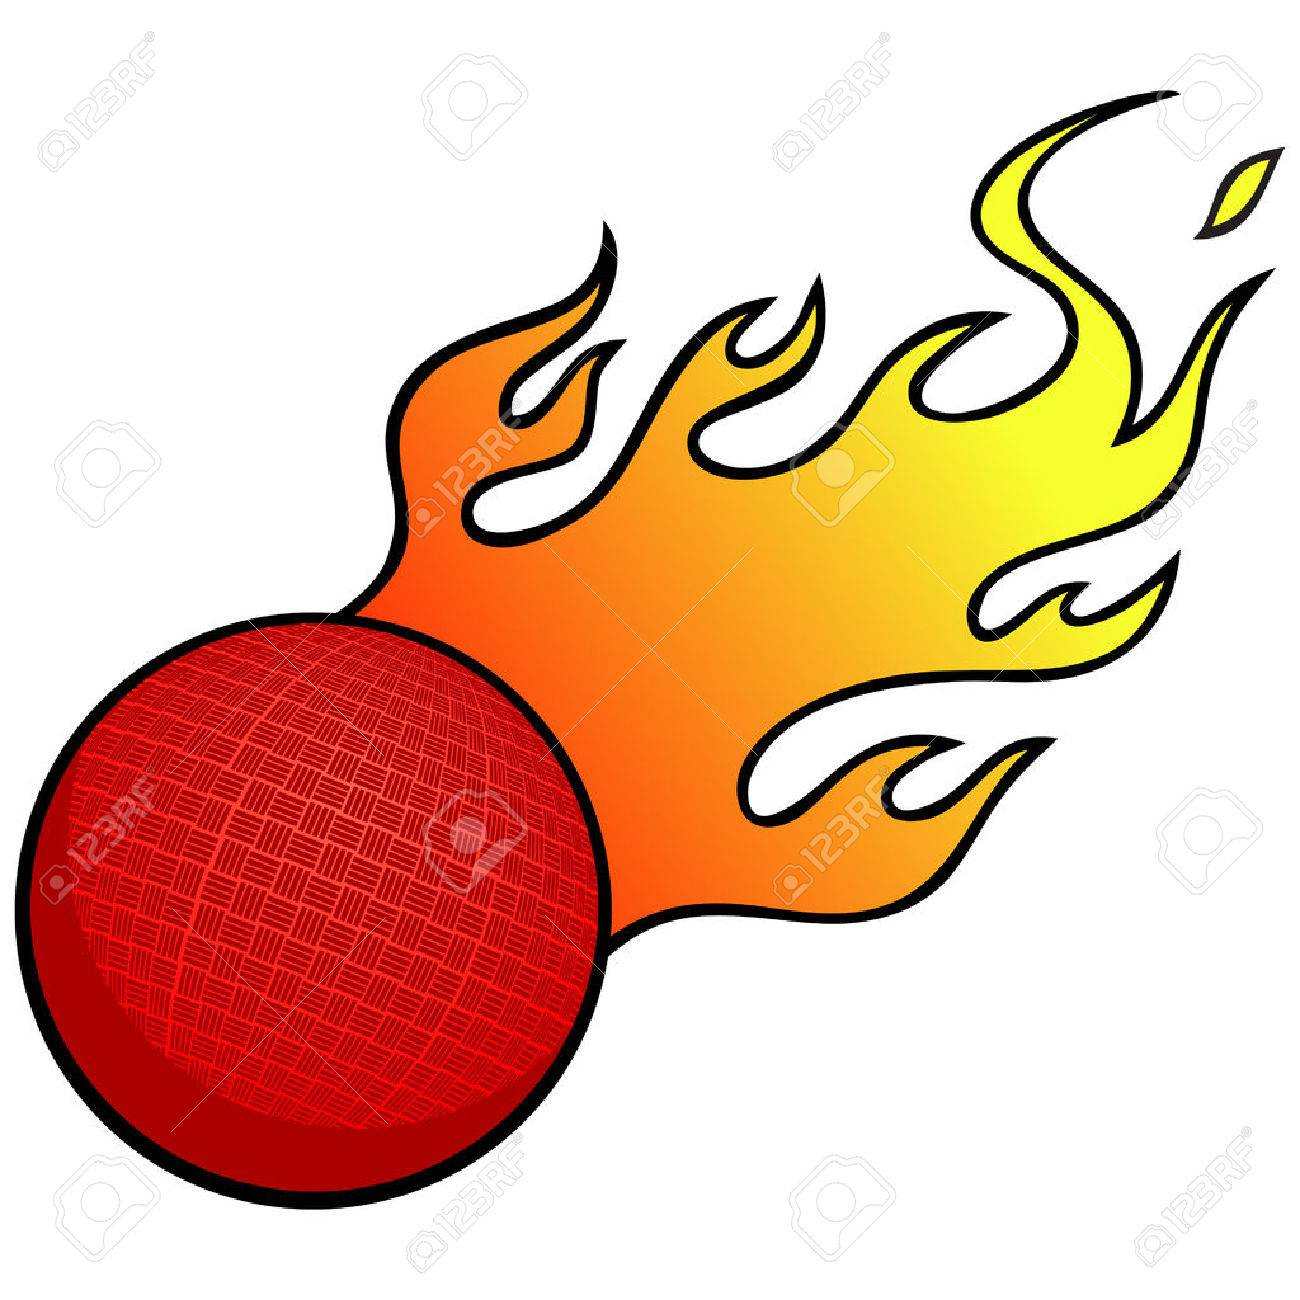 dodgeball with flames royalty free cliparts vectors and stock rh 123rf com